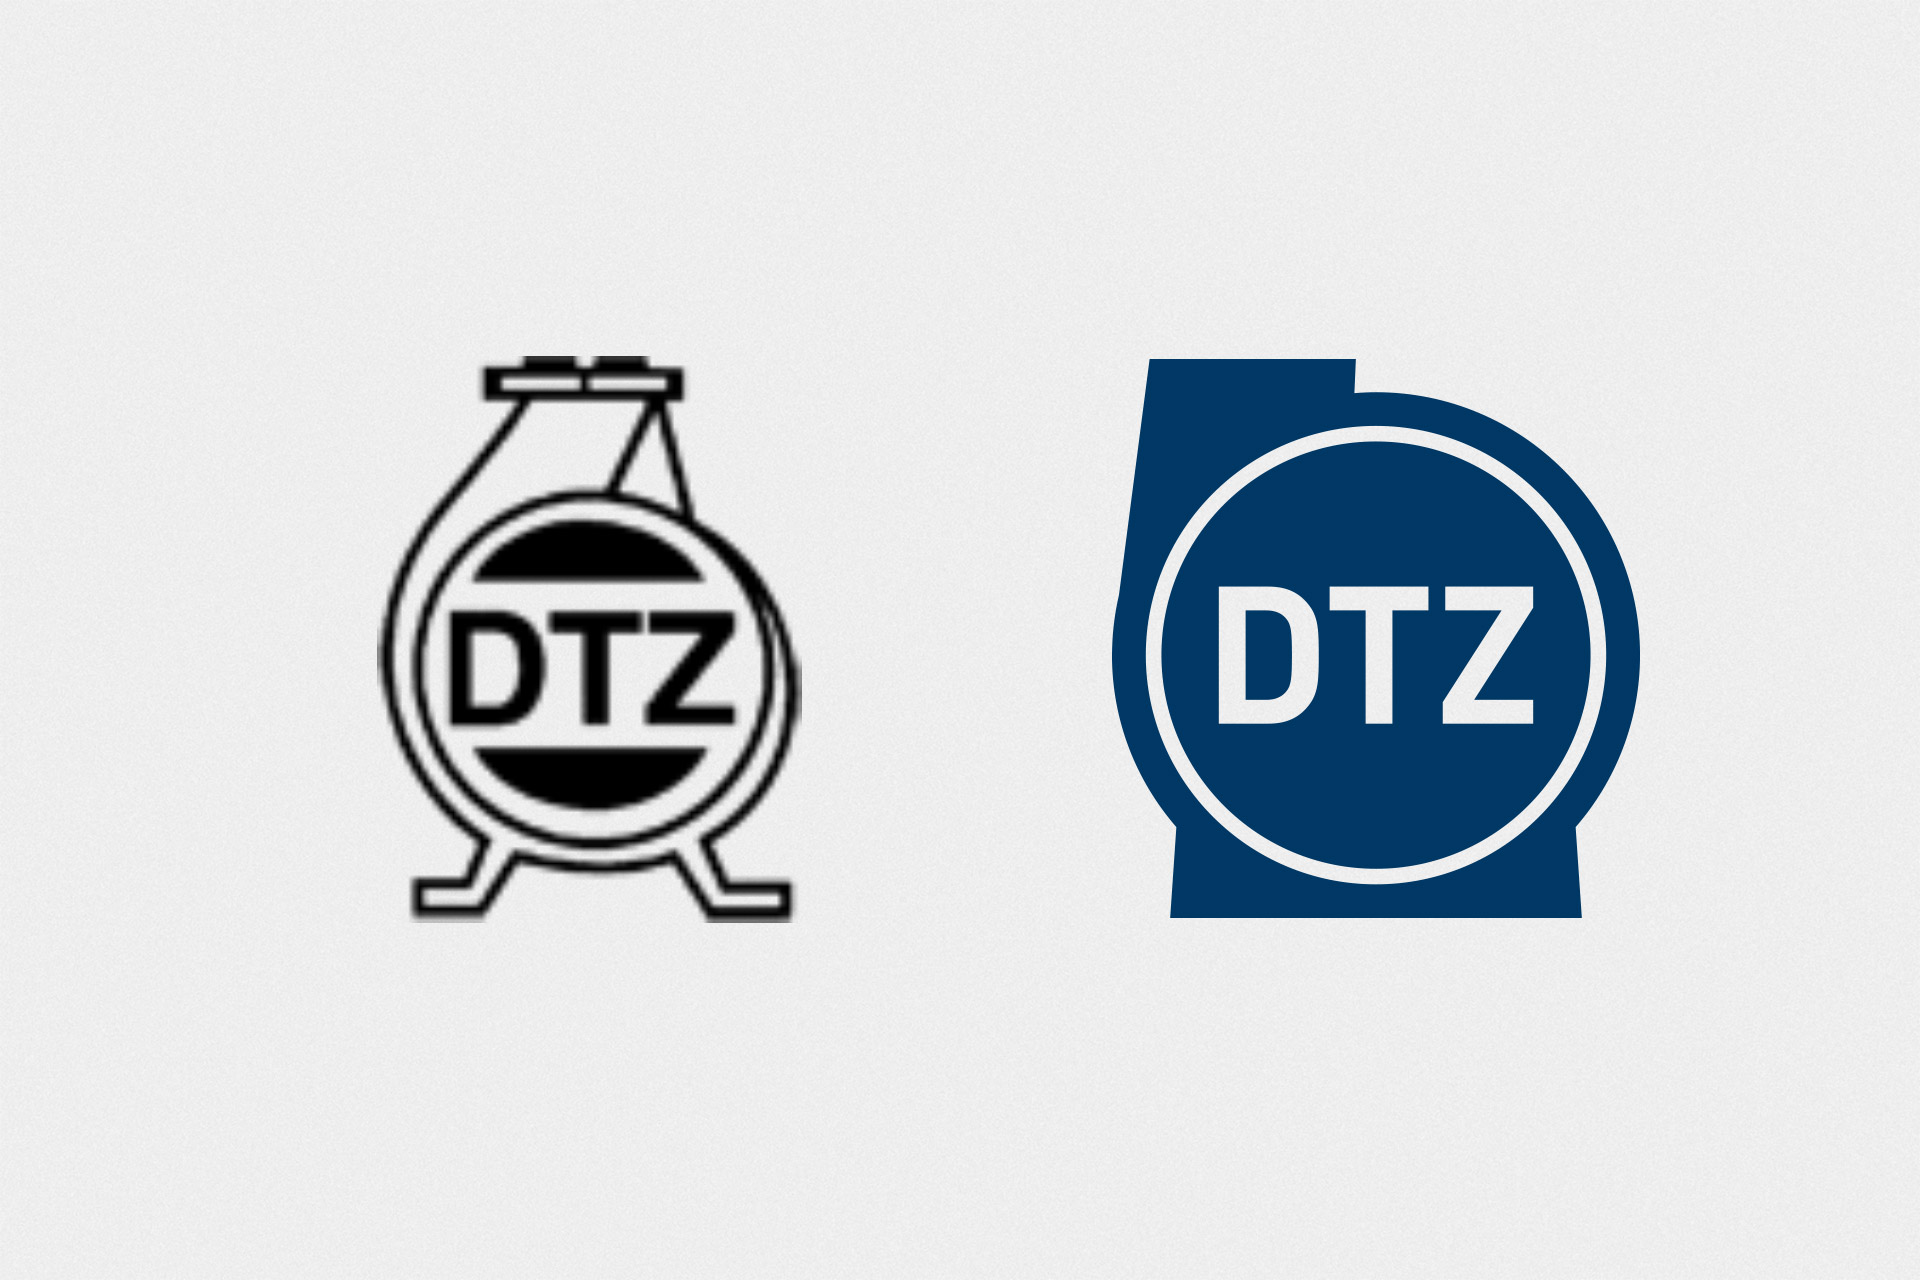 dtz-corporate-design logo design